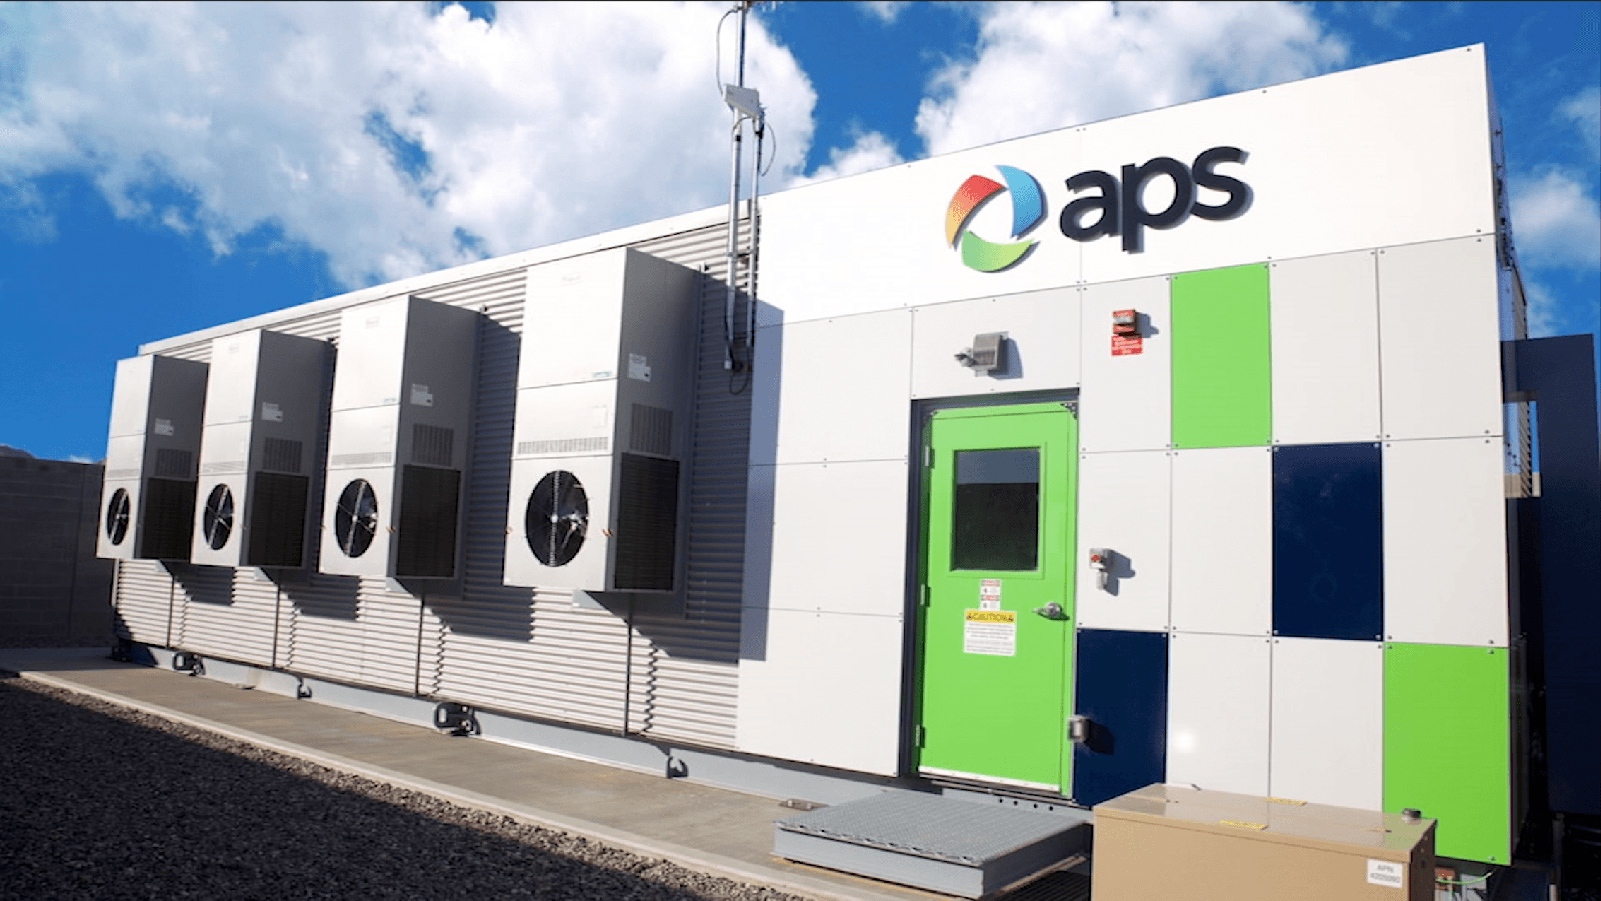 APS battery storage facility with a blue sky and clouds.